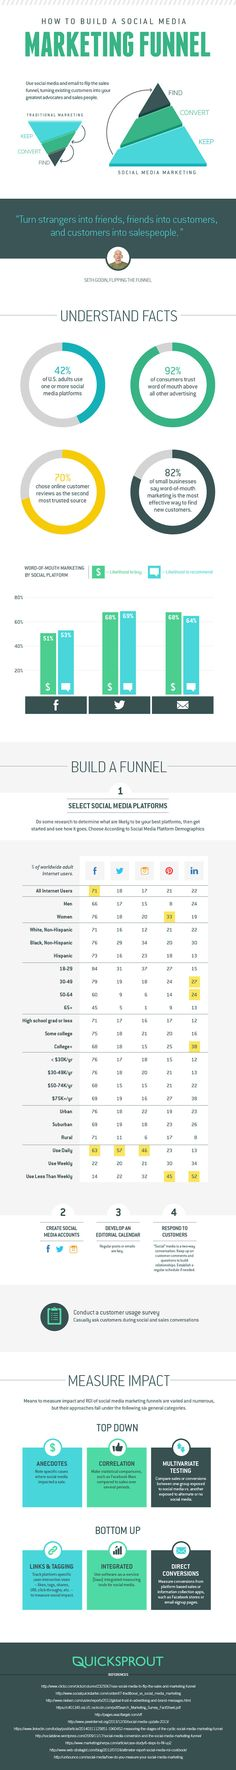 How to Create a #SocialMedia Marketing Funnel - #infographic #Marketing